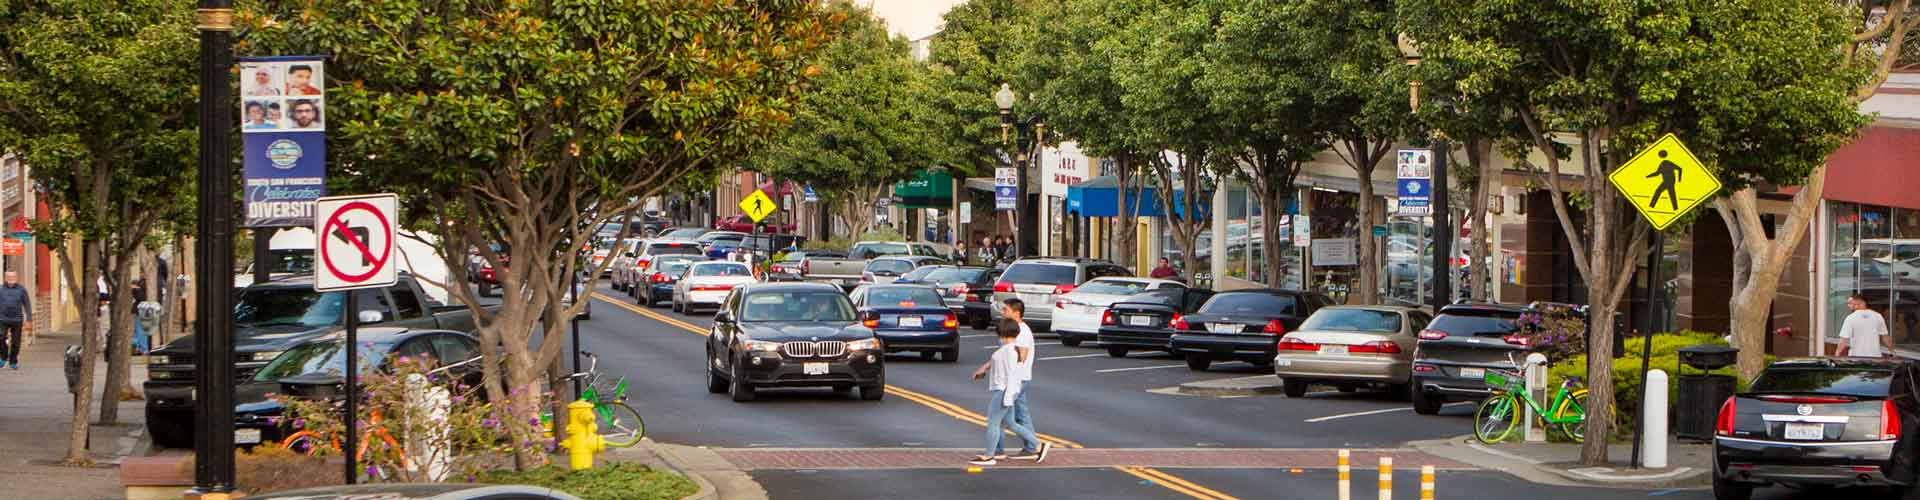 Downtown Parking | City of South San Francisco